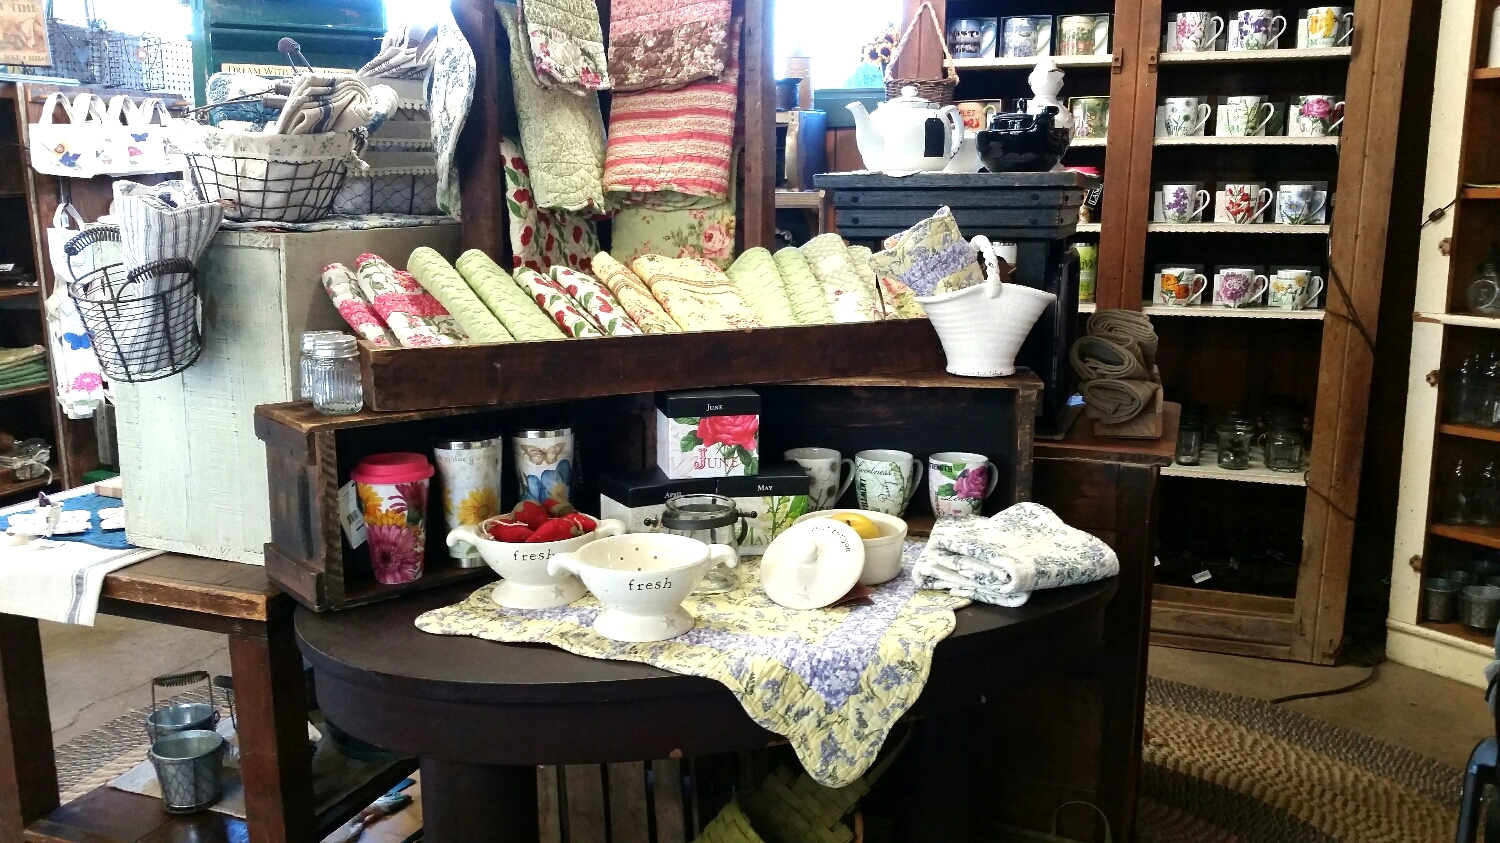 New quilted patterns, and pretty new pottery.